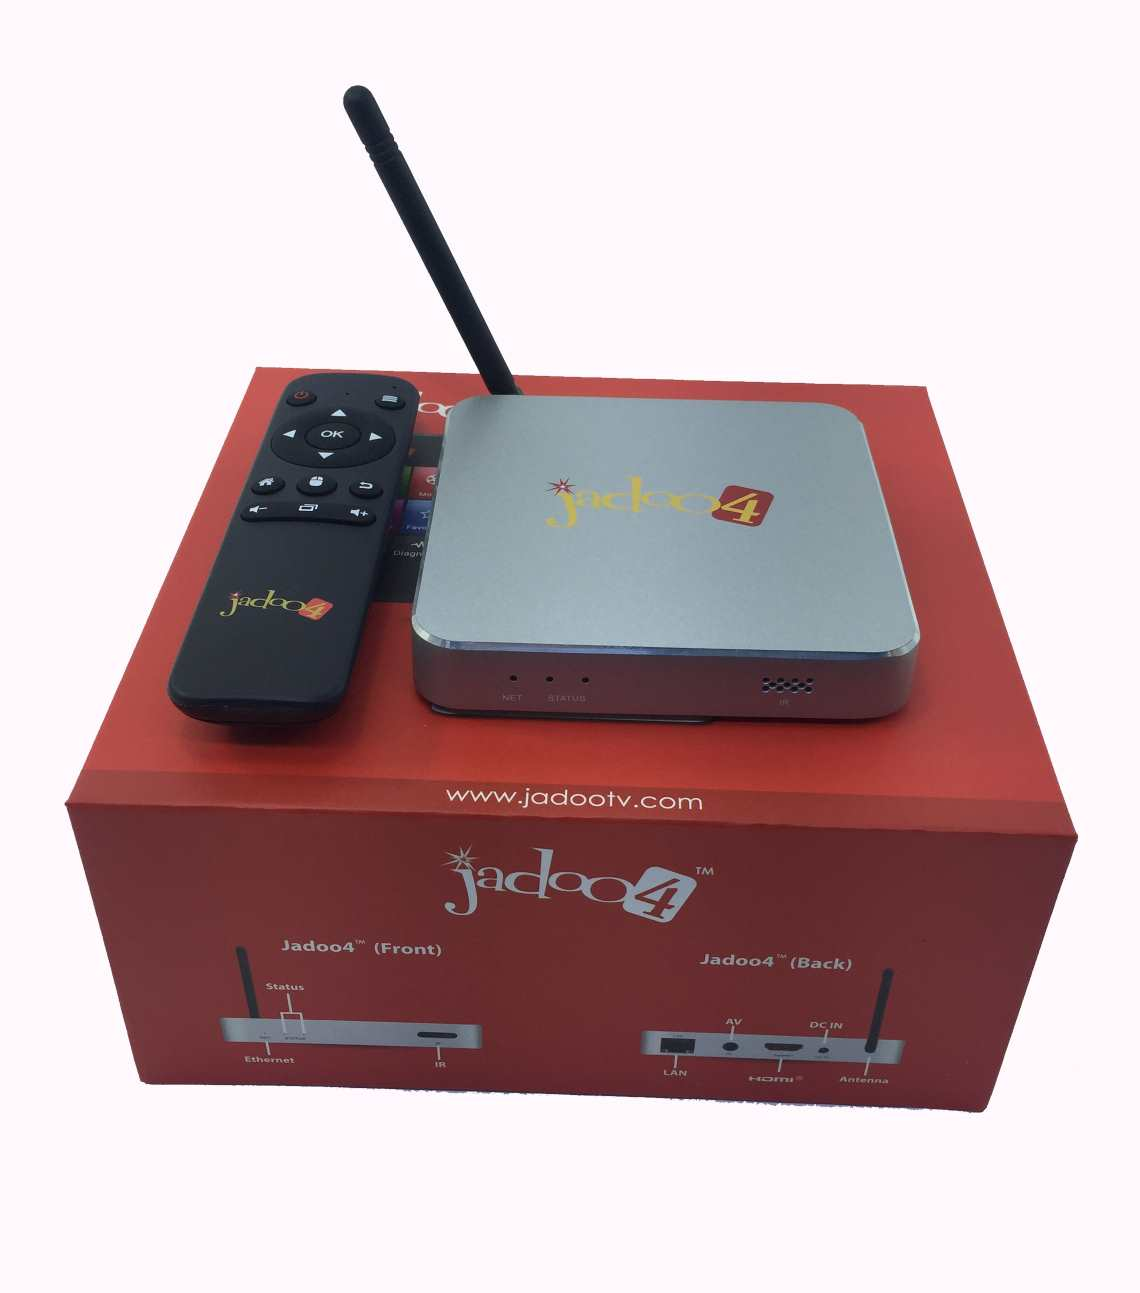 Home / INTERNET TV BOXES / IPTV Boxes / JADOO 4 ANDROID SOUTH ASIAN ...